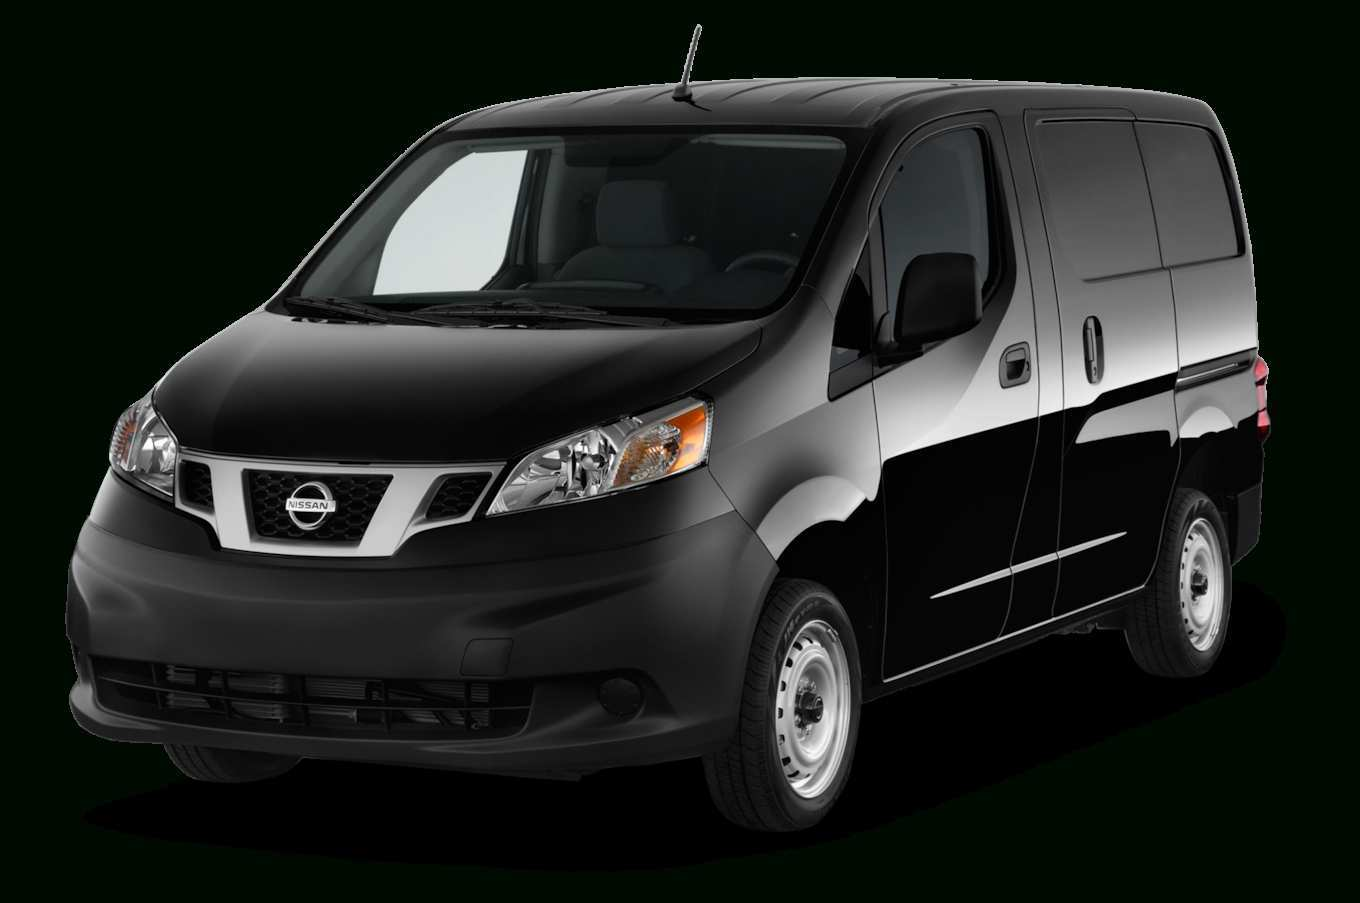 42 New Nissan Van 2020 Spy Shoot by Nissan Van 2020